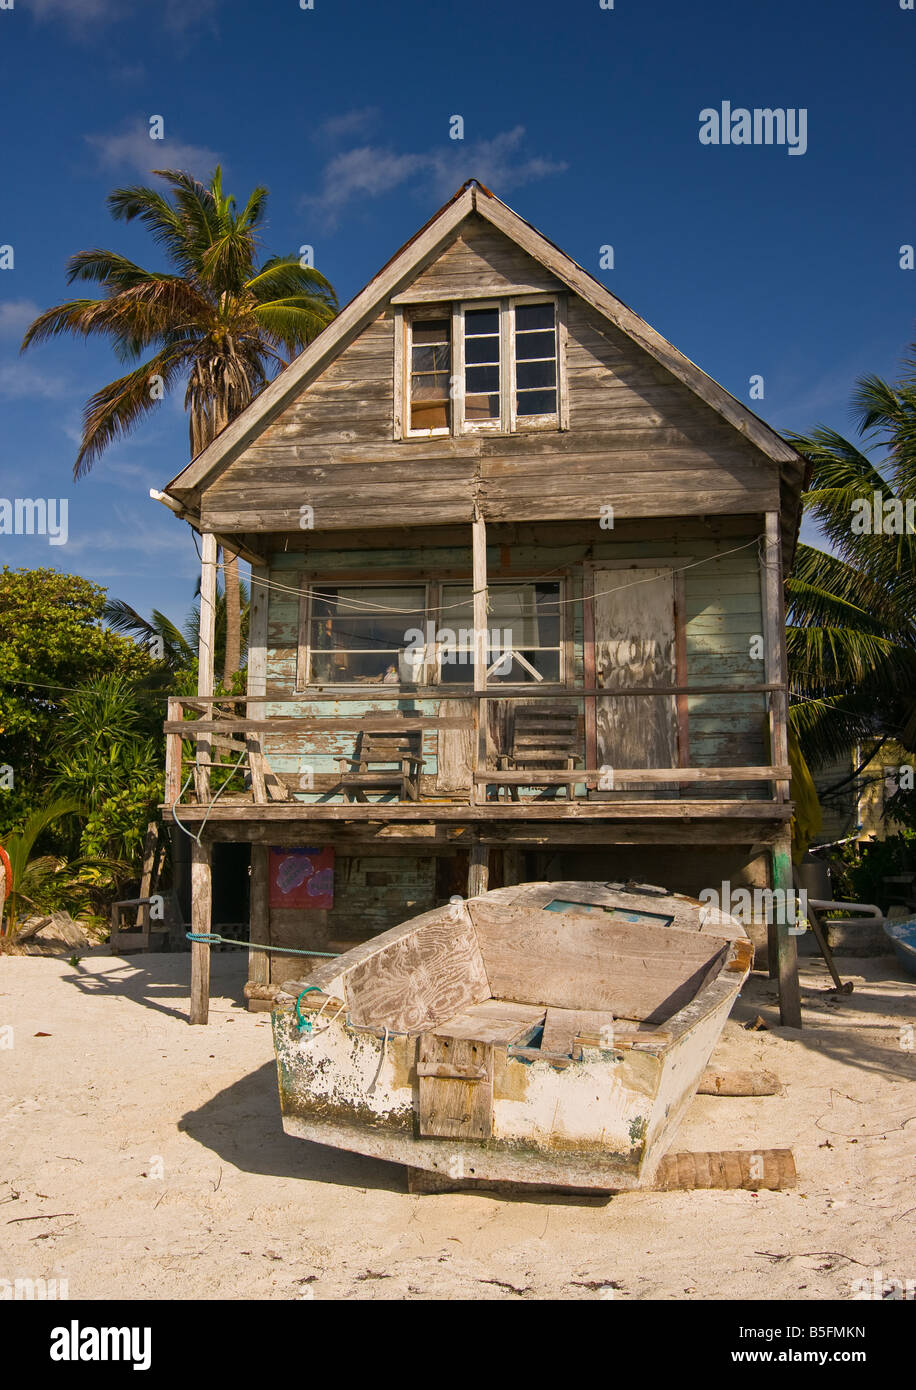 CAYE CAULKER BELIZE Old Wooden House On Stilts On Beach With Boat   Stock  Image